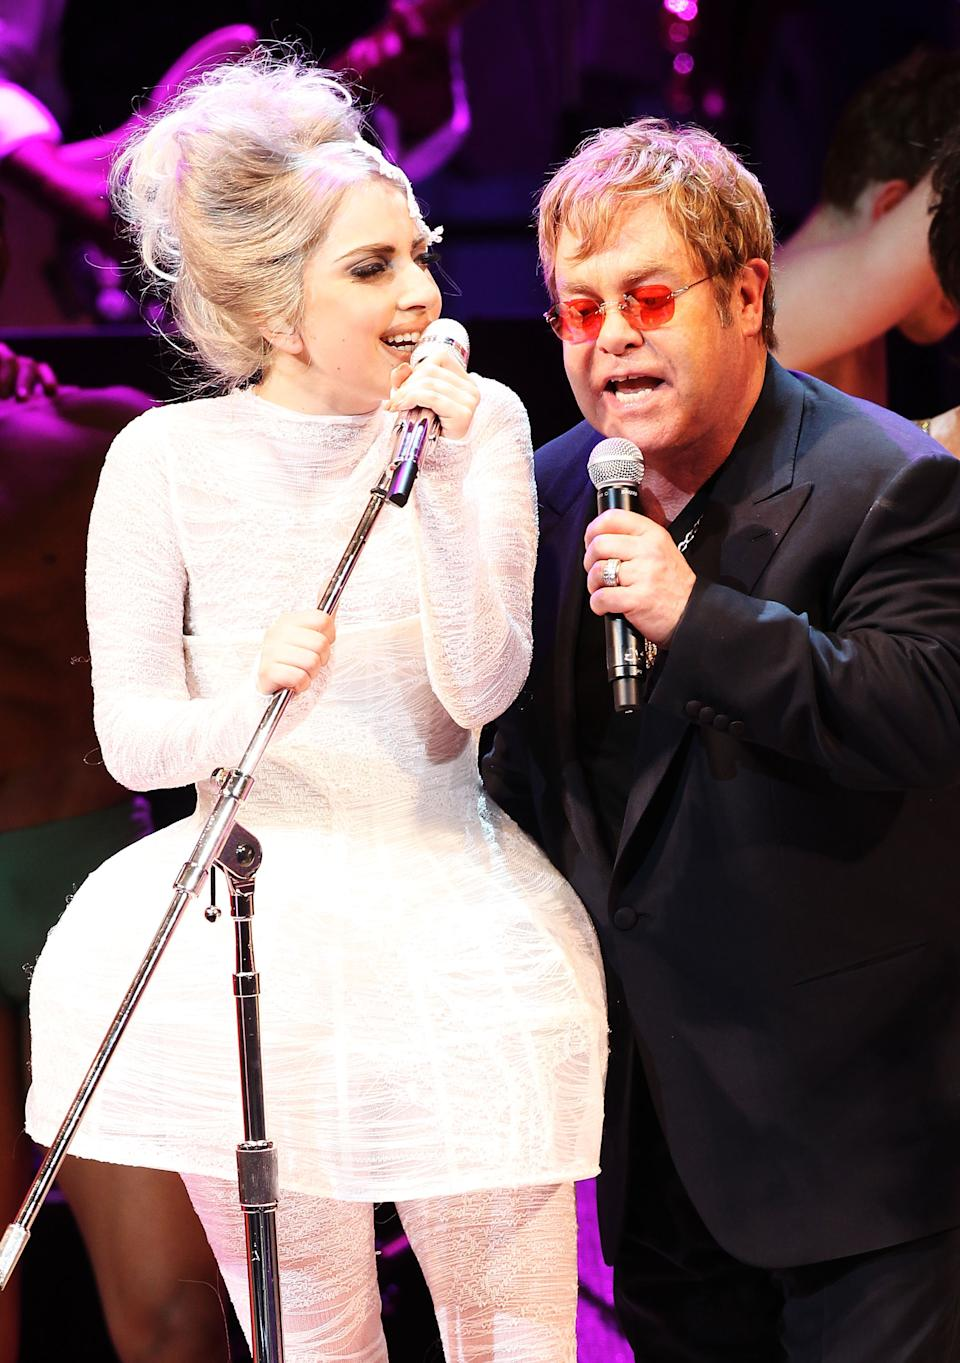 NEW YORK - MAY 13:  Lady Gaga and Elton John perform on stage during the Almay concert to celebrate the Rainforest Fund's 21st birthday at Carnegie Hall on May 13, 2010 in New York City.  (Photo by Kevin Kane/WireImage)